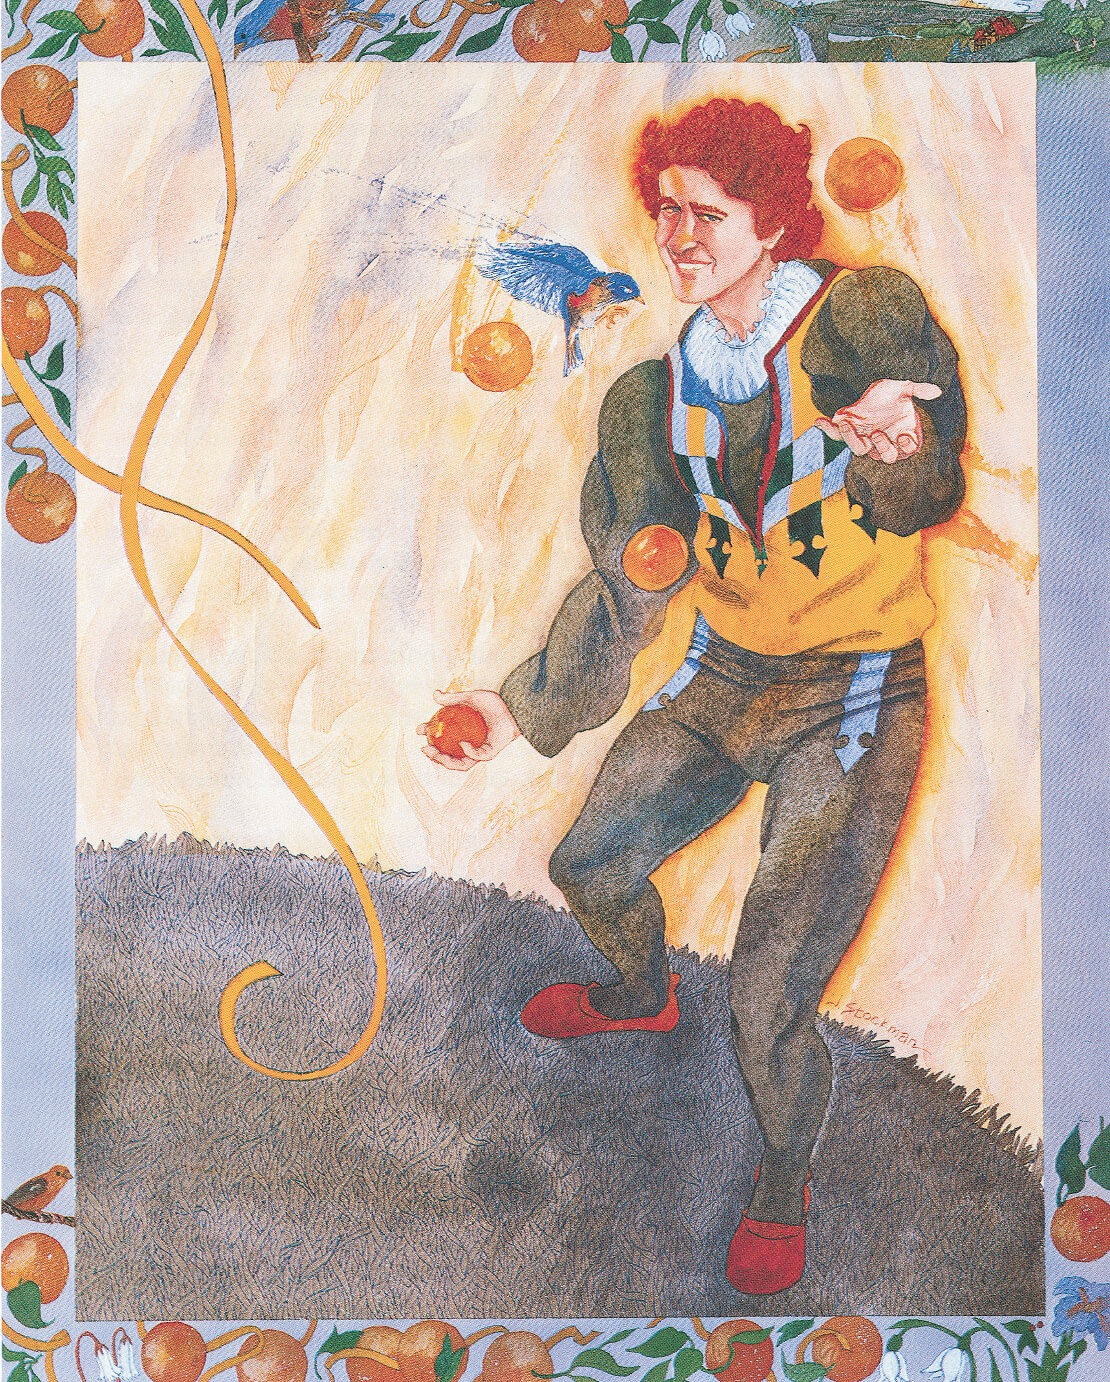 The Apprentice Juggler, Tales of the Kingdom Chapter 3